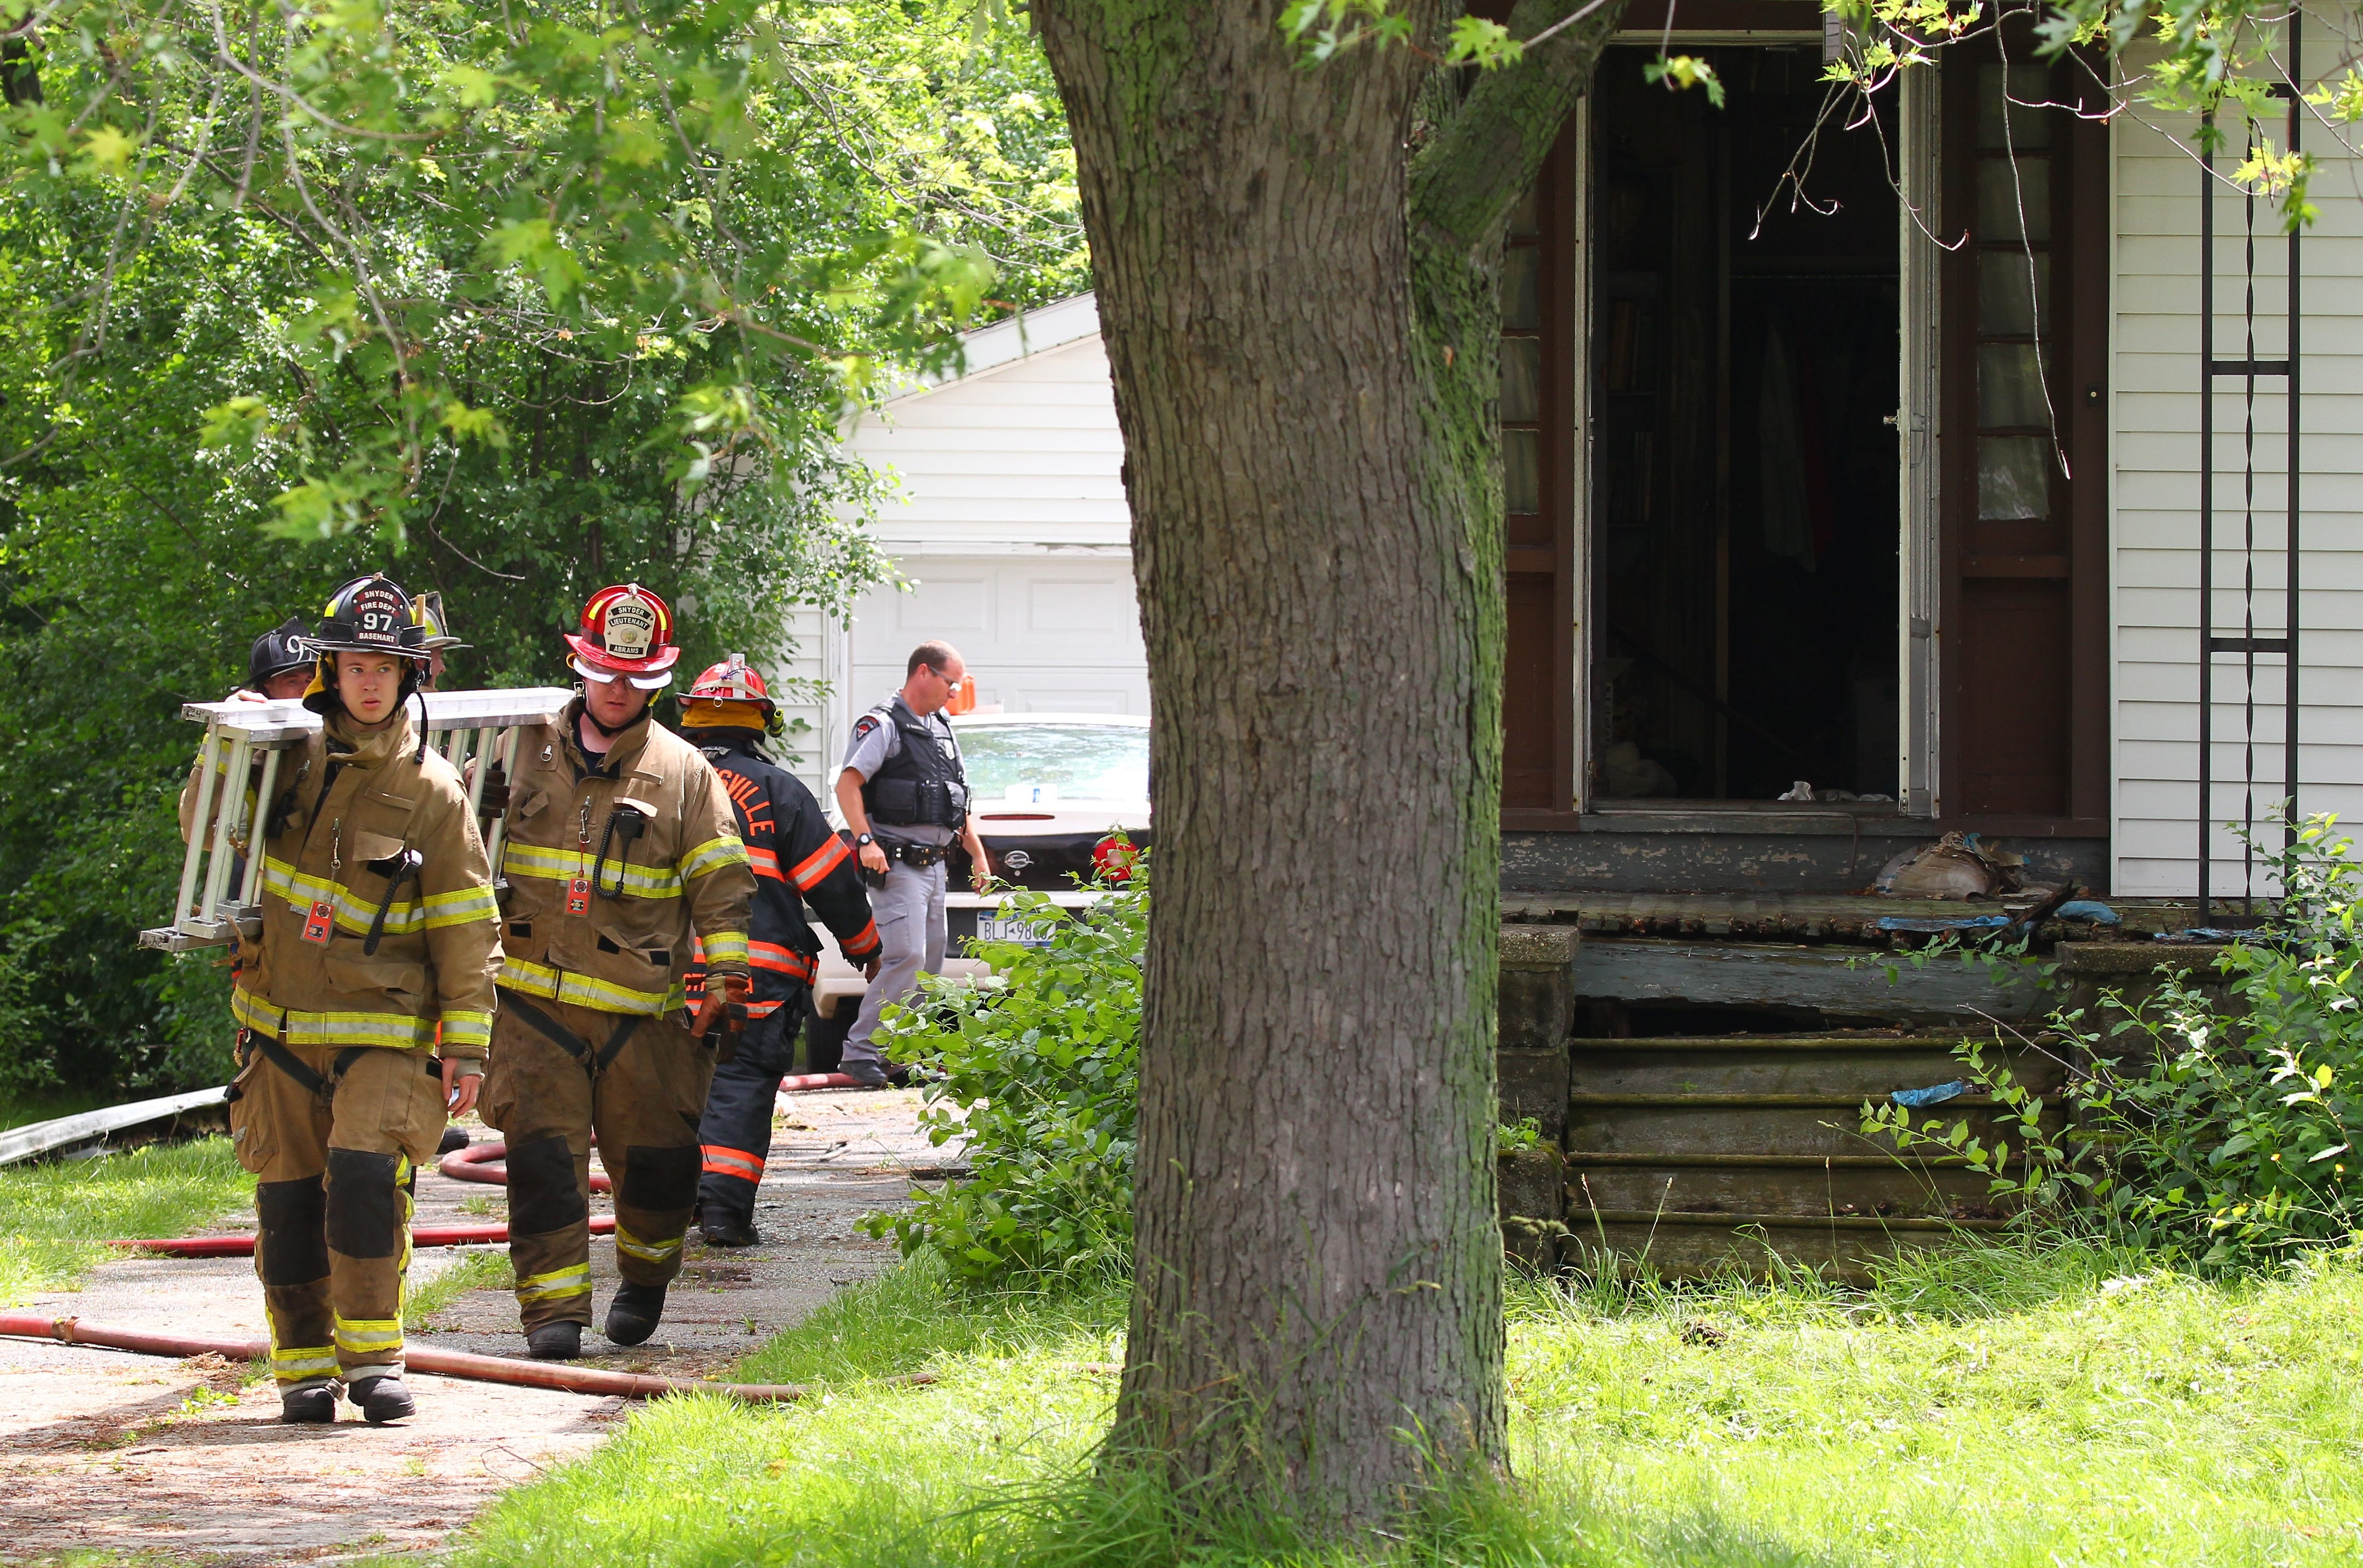 Crews work the scene of a house fire on Eggert Rd in Amherst Tuesday, June 23, 2015.    (Mark Mulville/Buffalo News)